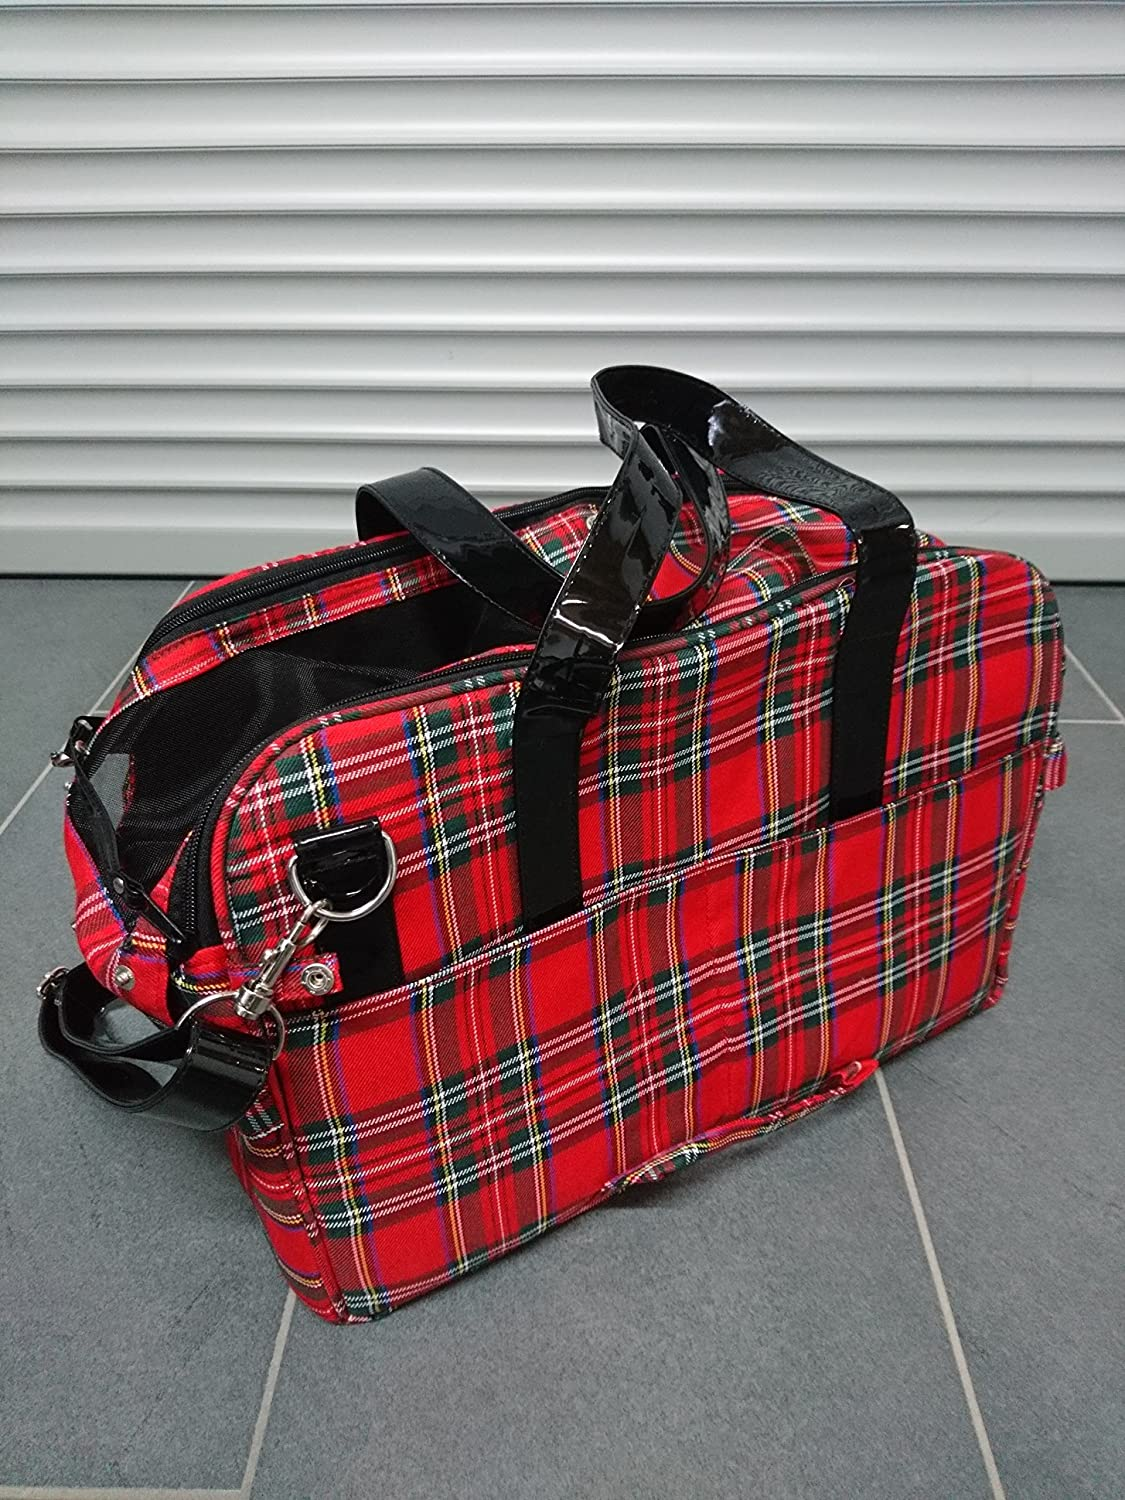 Karlie 31986 Scotland Carry Case Red Chequered 43 x 24 x 29 cm